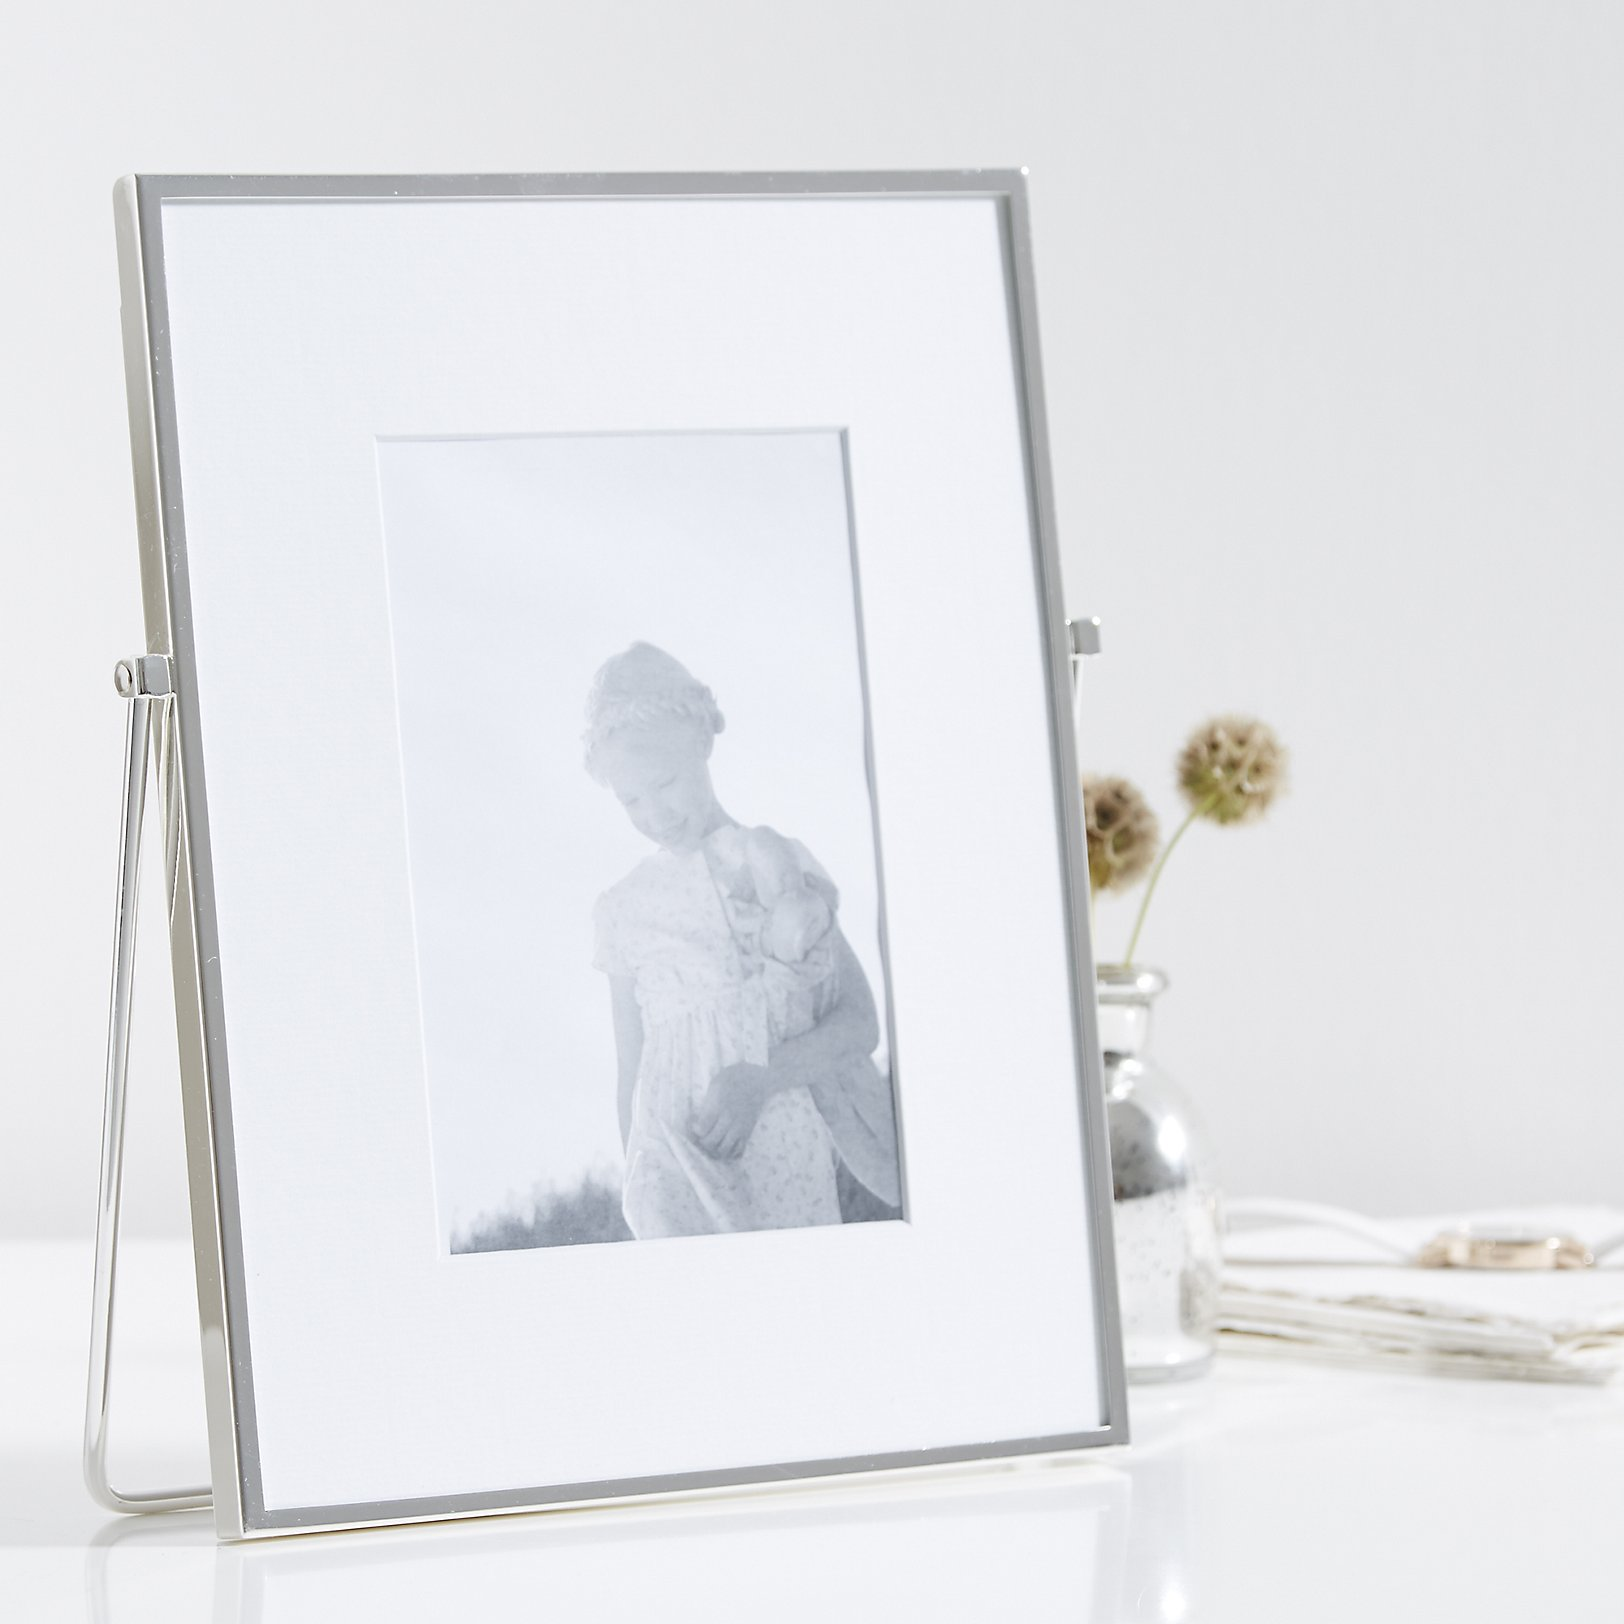 Silver 5x7 easel frame